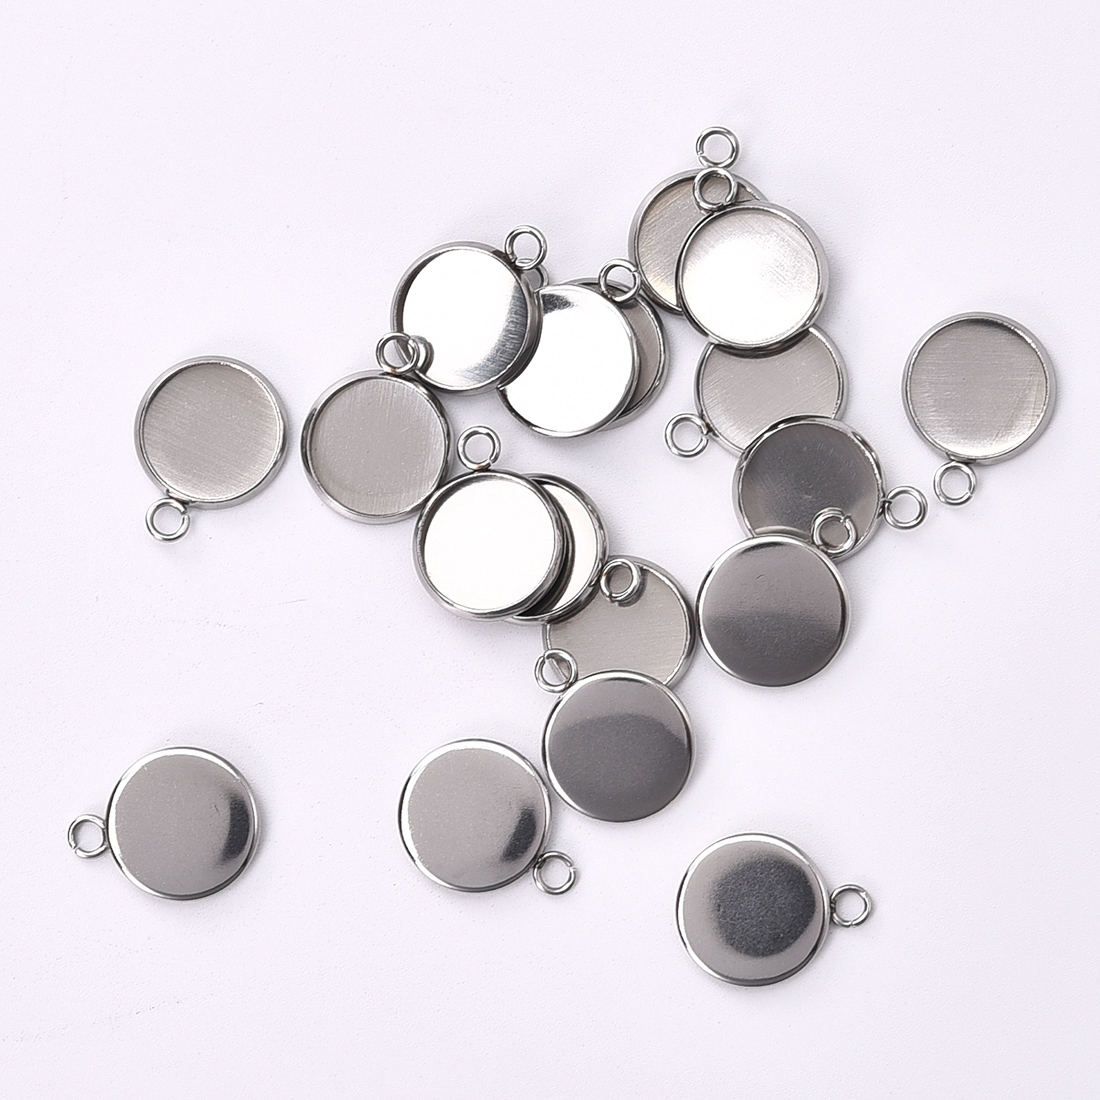 50pcs/Lot 8mm 10mm 12mm Round Stainless Steel Pendant Cabochon Setting Bezel Jewelry Making Component Base